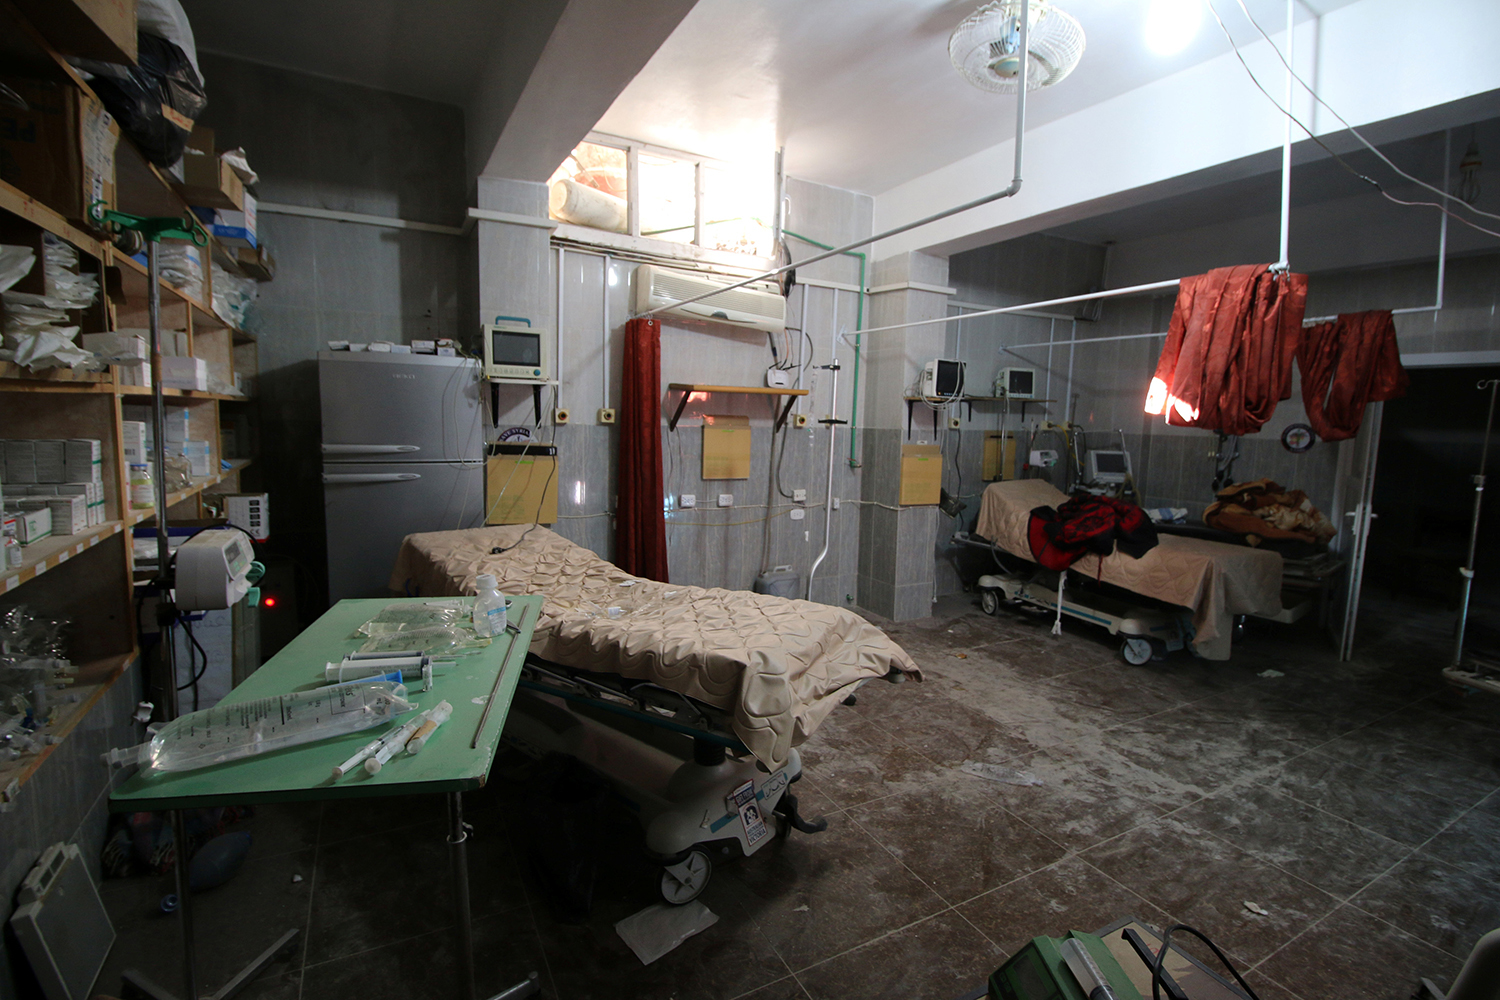 ALEPPO 2016-10-01 An empty room at a damaged field hospital is seen after airstrikes in a rebel held area in Aleppo, Syria October 1, 2016. REUTERS/Abdalrhman Ismail Photo: / REUTERS / TT / kod 72000